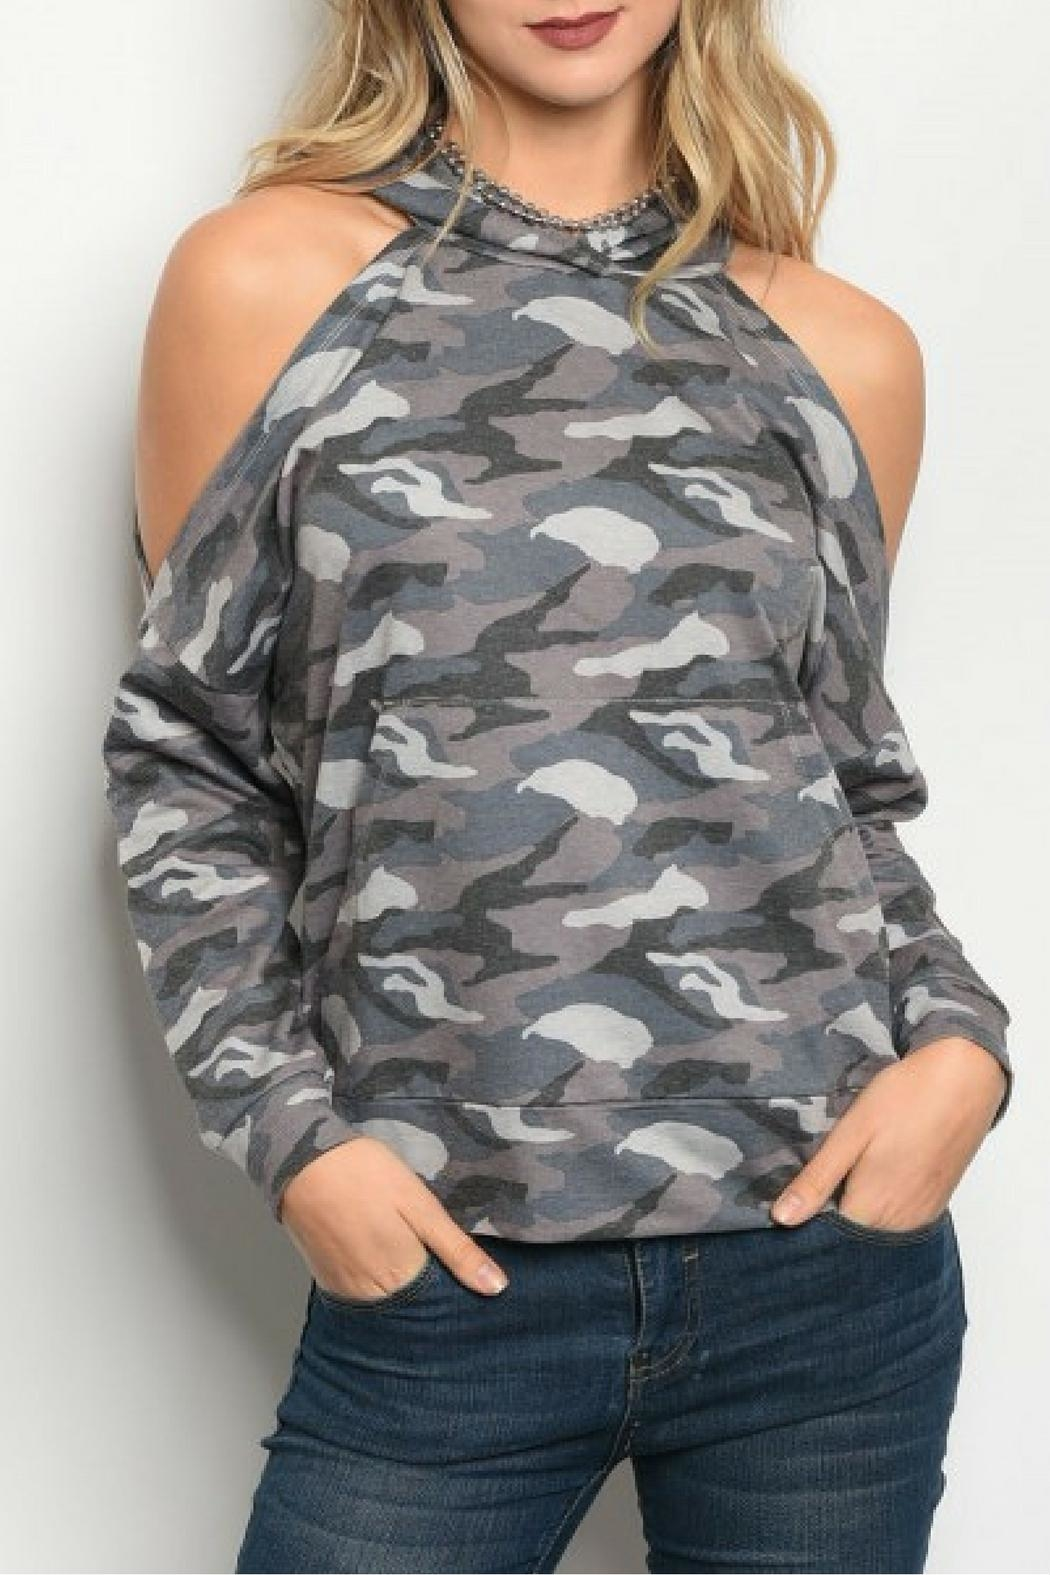 HYFVE Gray Camouflage Top - Main Image